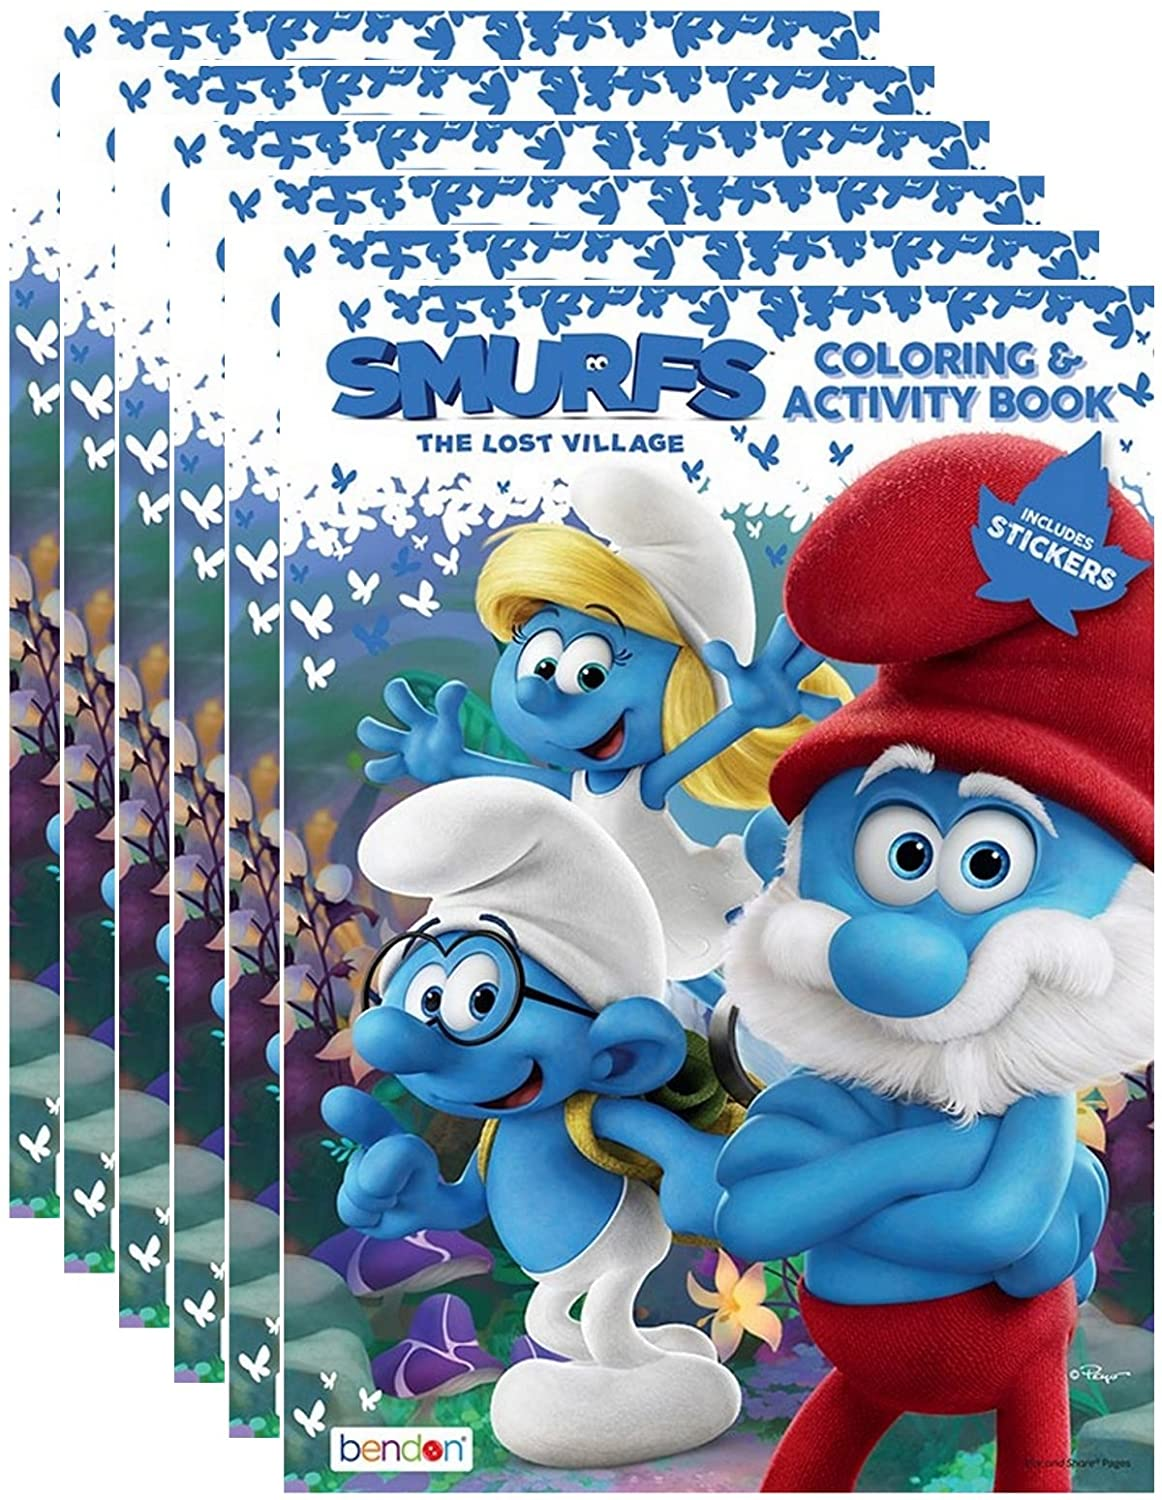 Amazon.com: Smurfs The Lost Village Coloring and Activity Book with ...